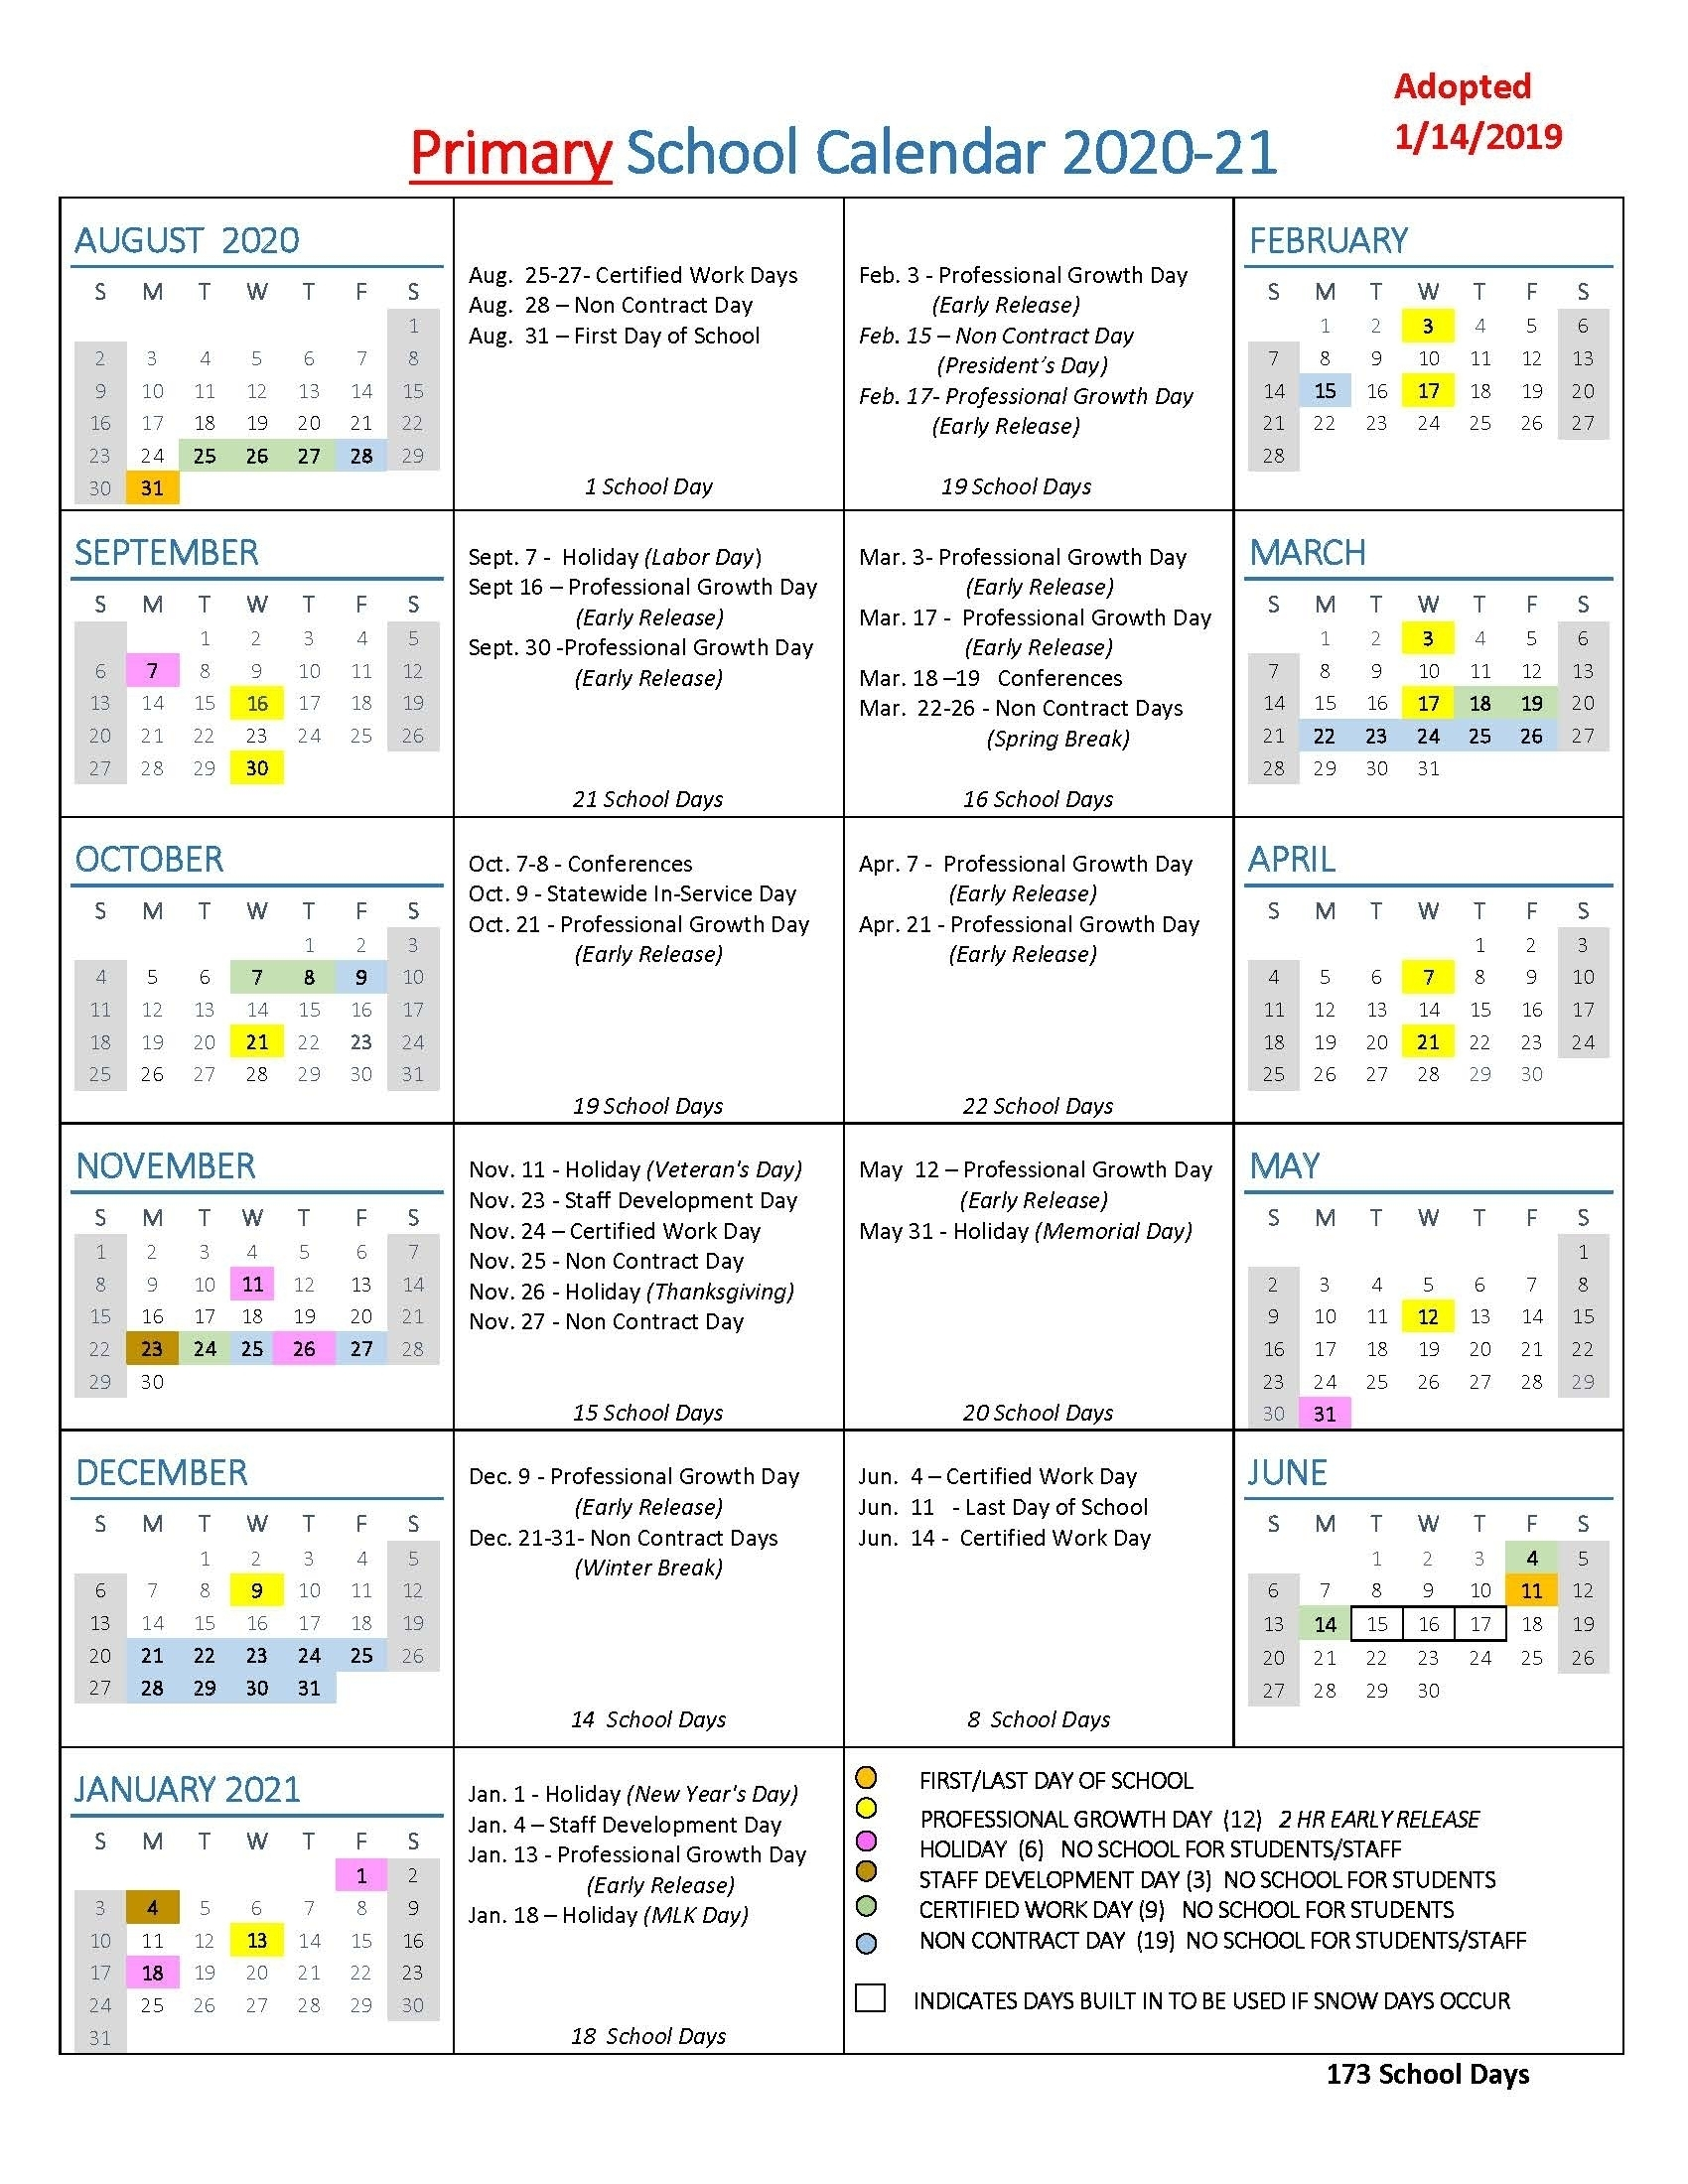 Calendar With All The Special Days In 2020 - Calendar for Special Days Calendat 2019 For Schools